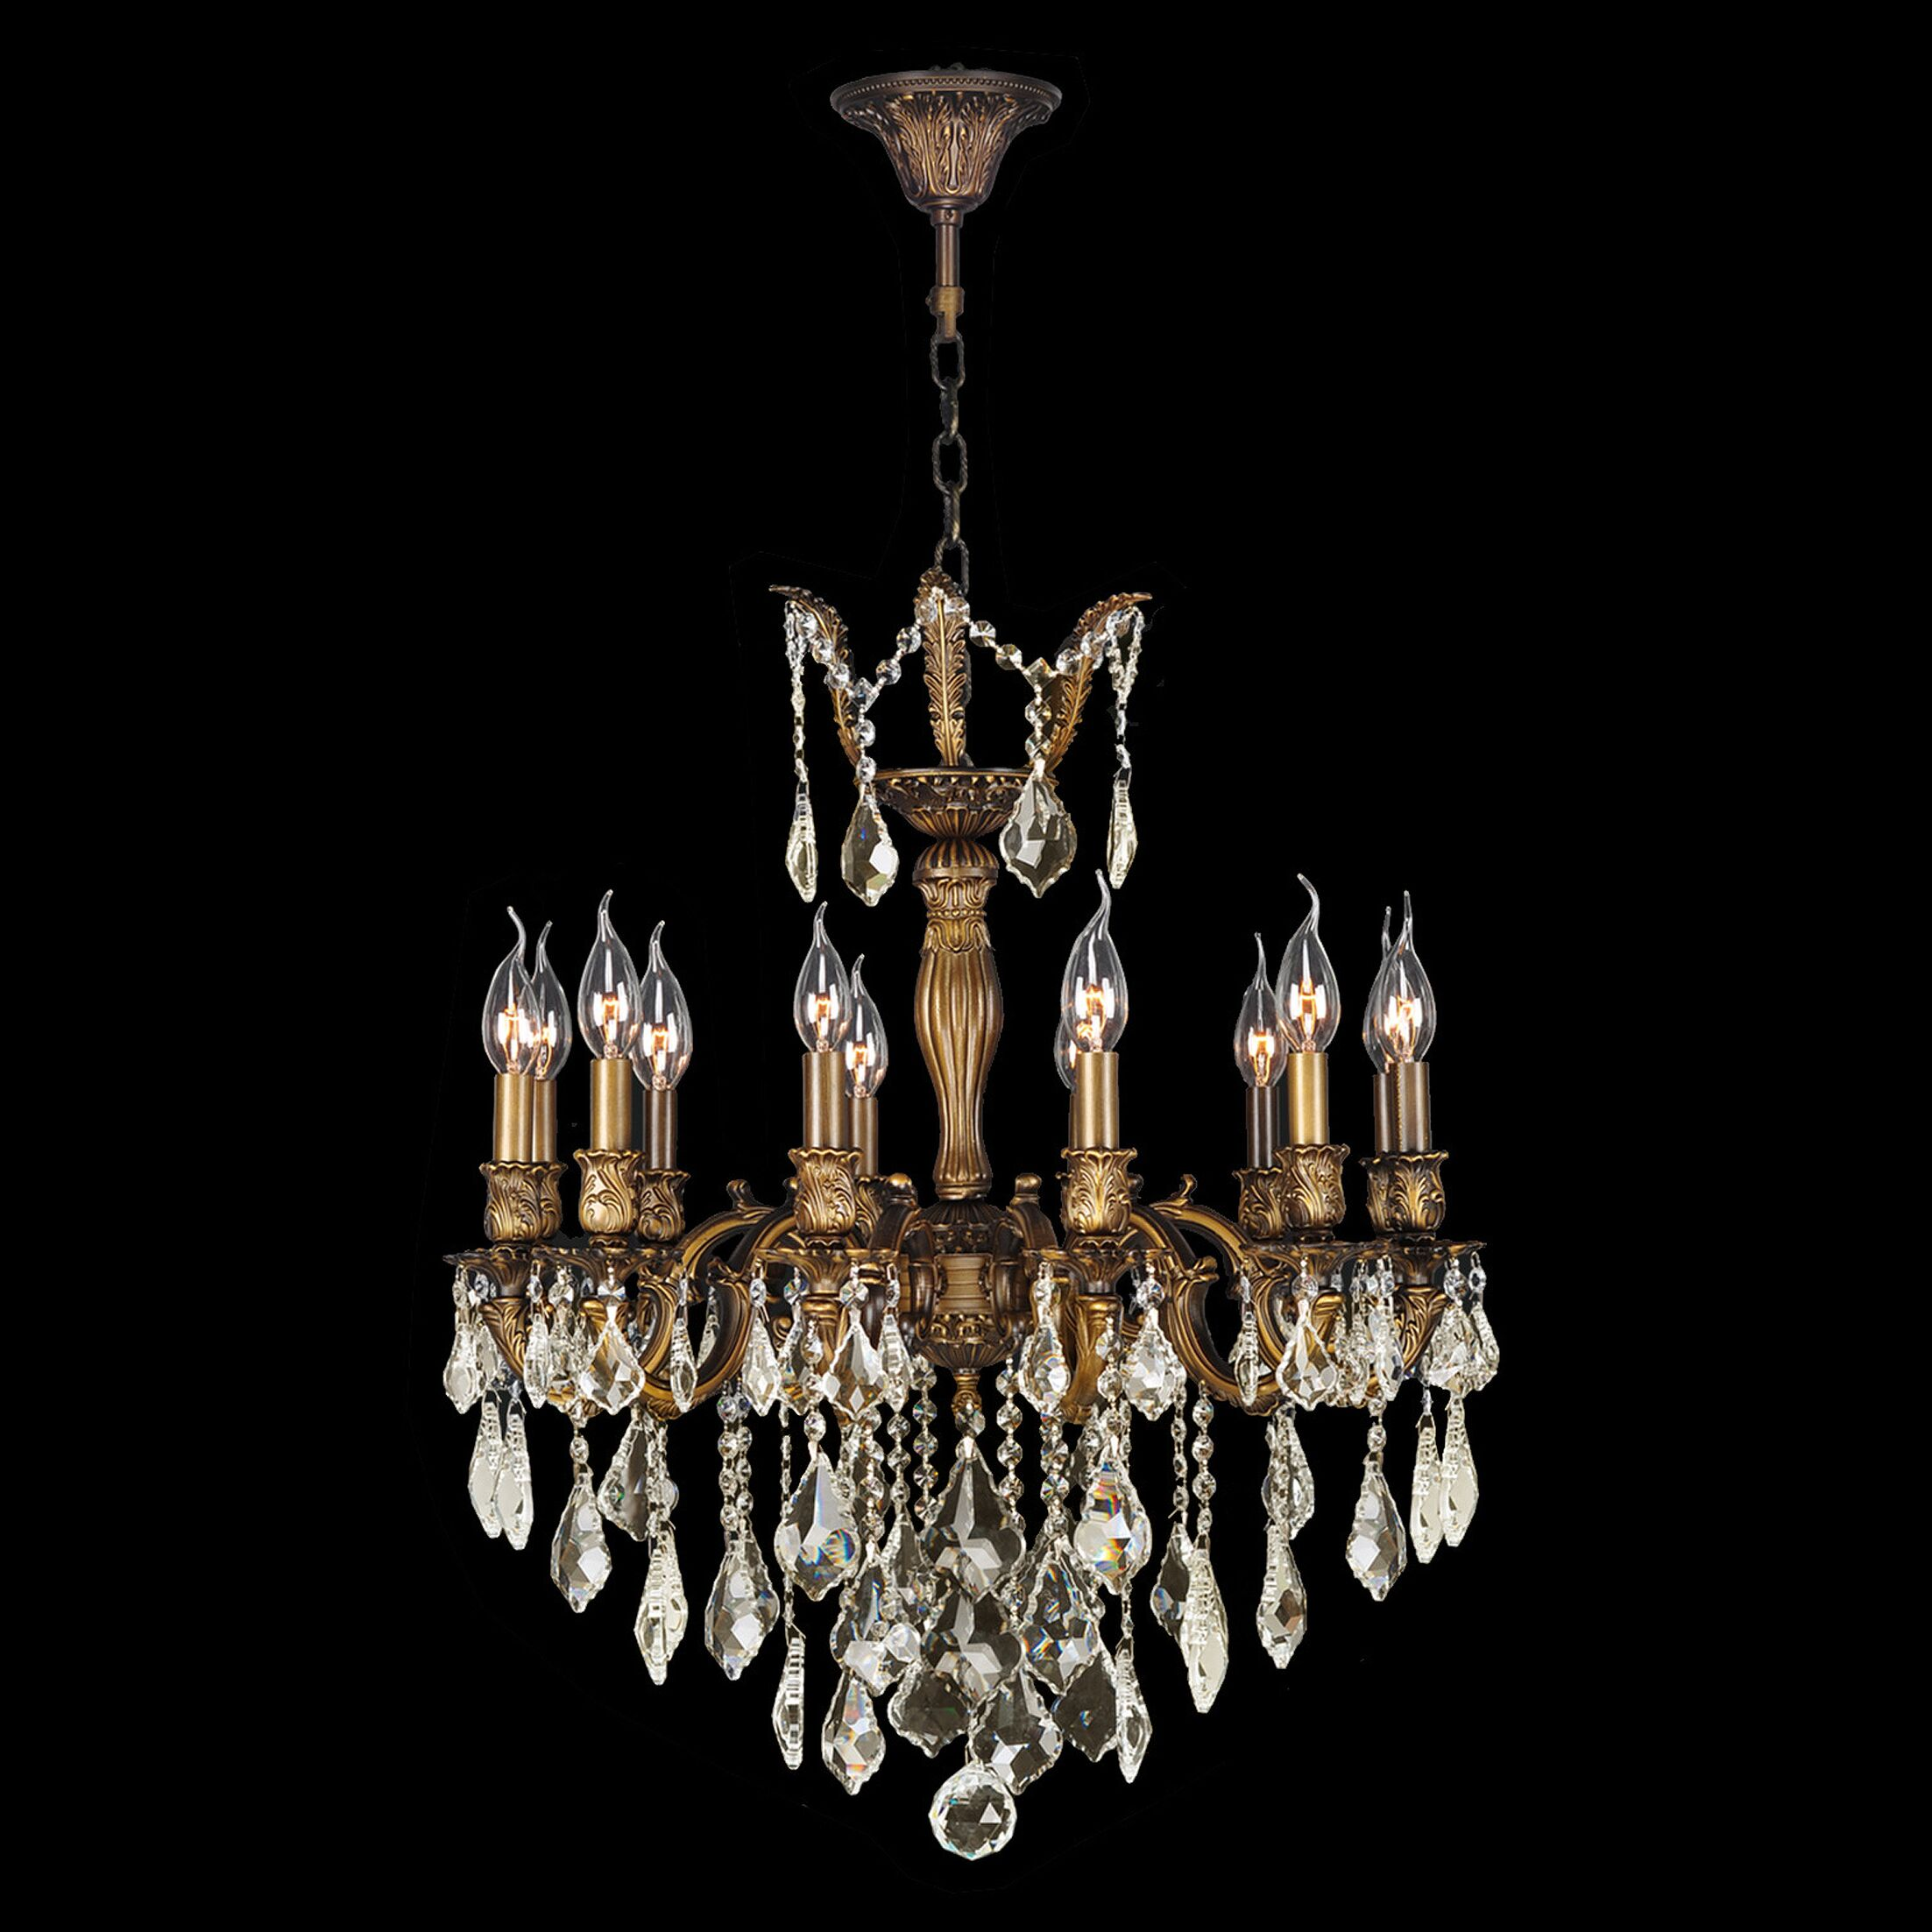 Dodson 12-Light Hardwired Candle Style Chandelier